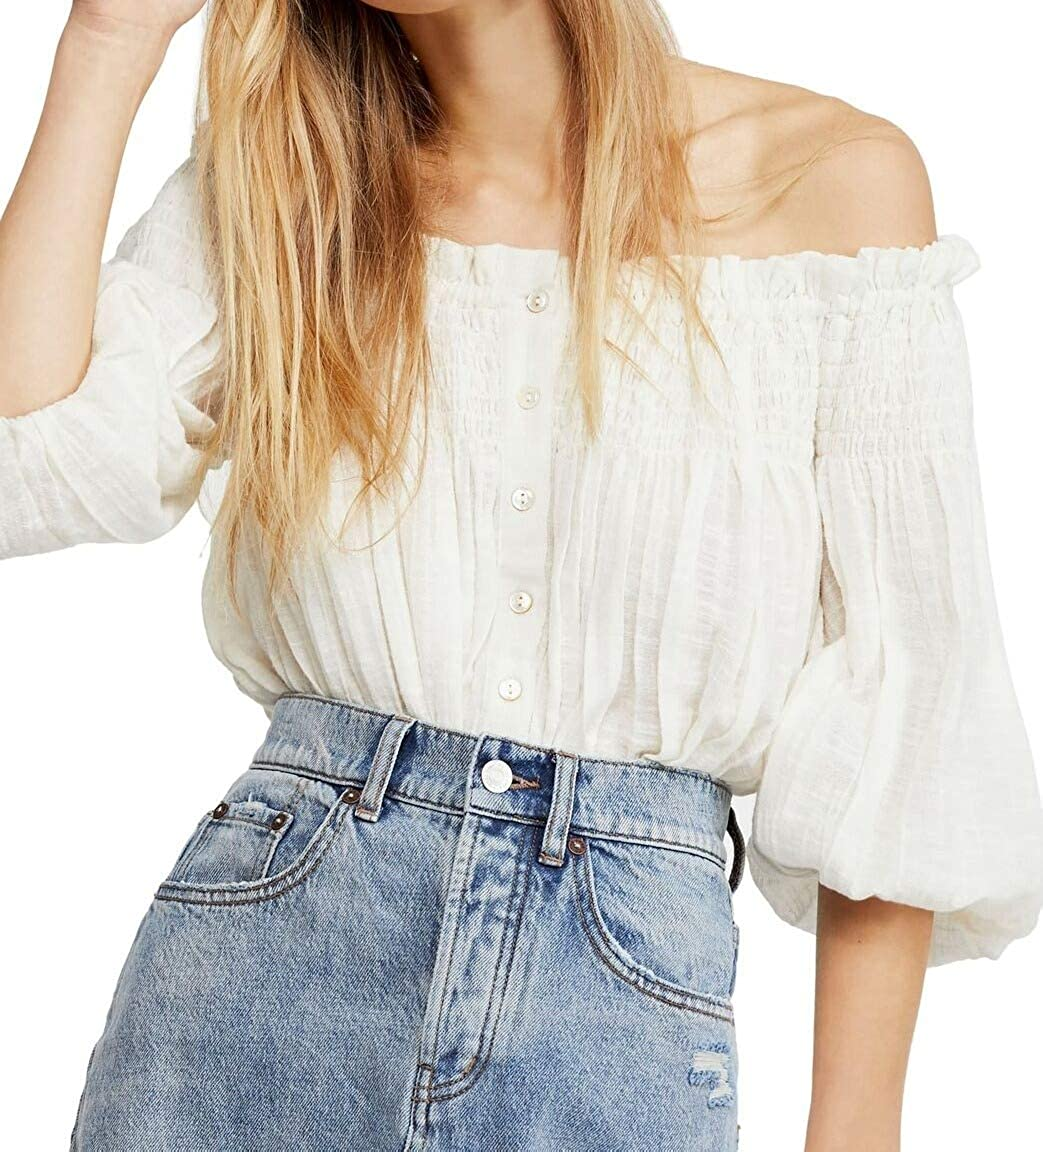 Free People Dancing Dawn Super beauty product restock quality top Manufacturer OFFicial shop Till